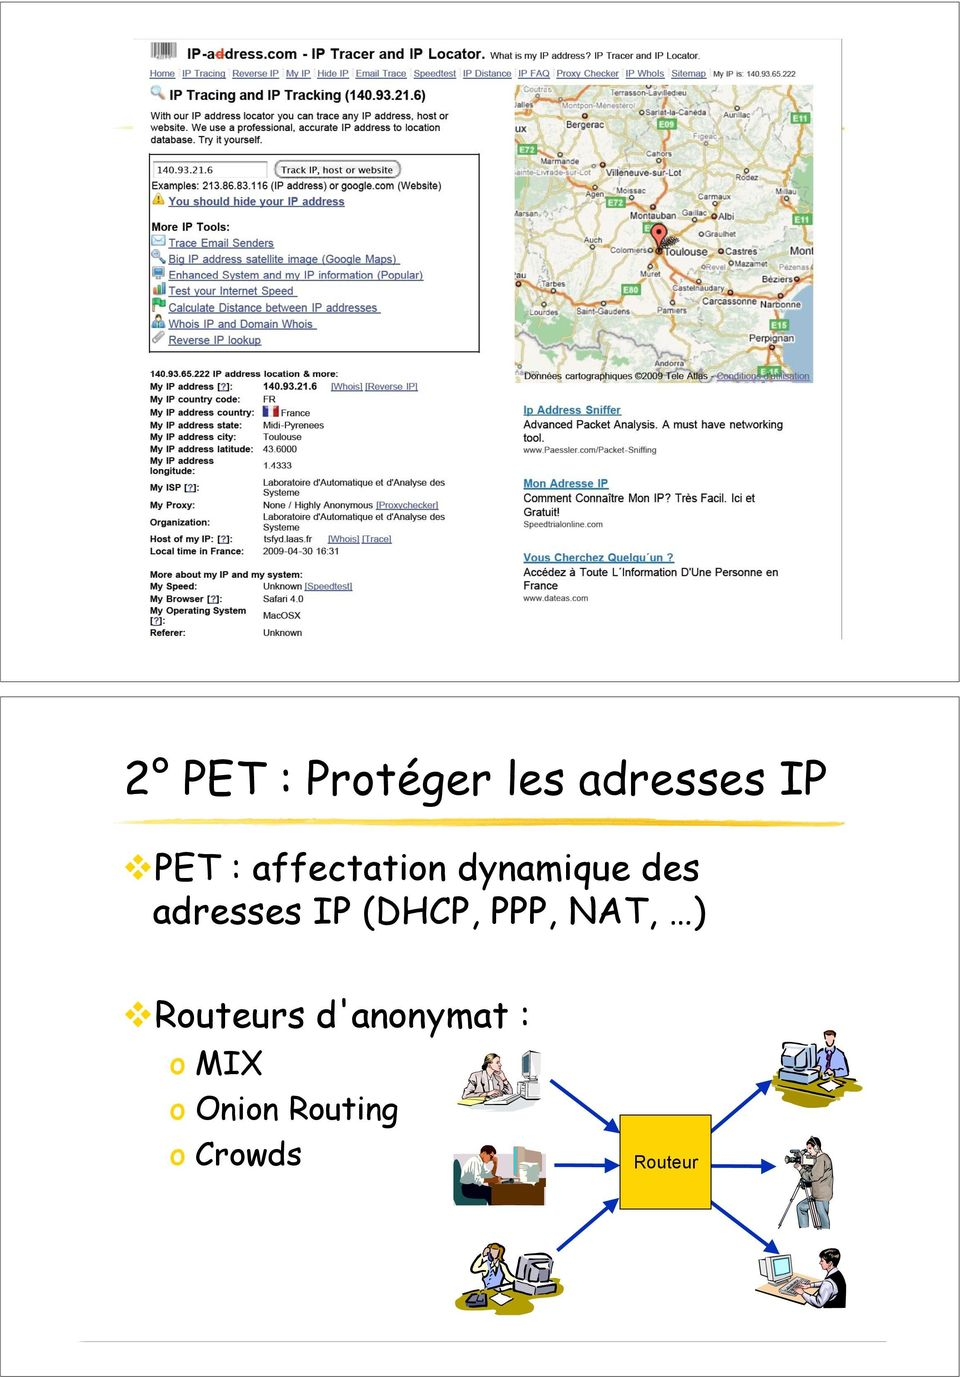 adresses IP (DHCP, PPP, NAT, )!